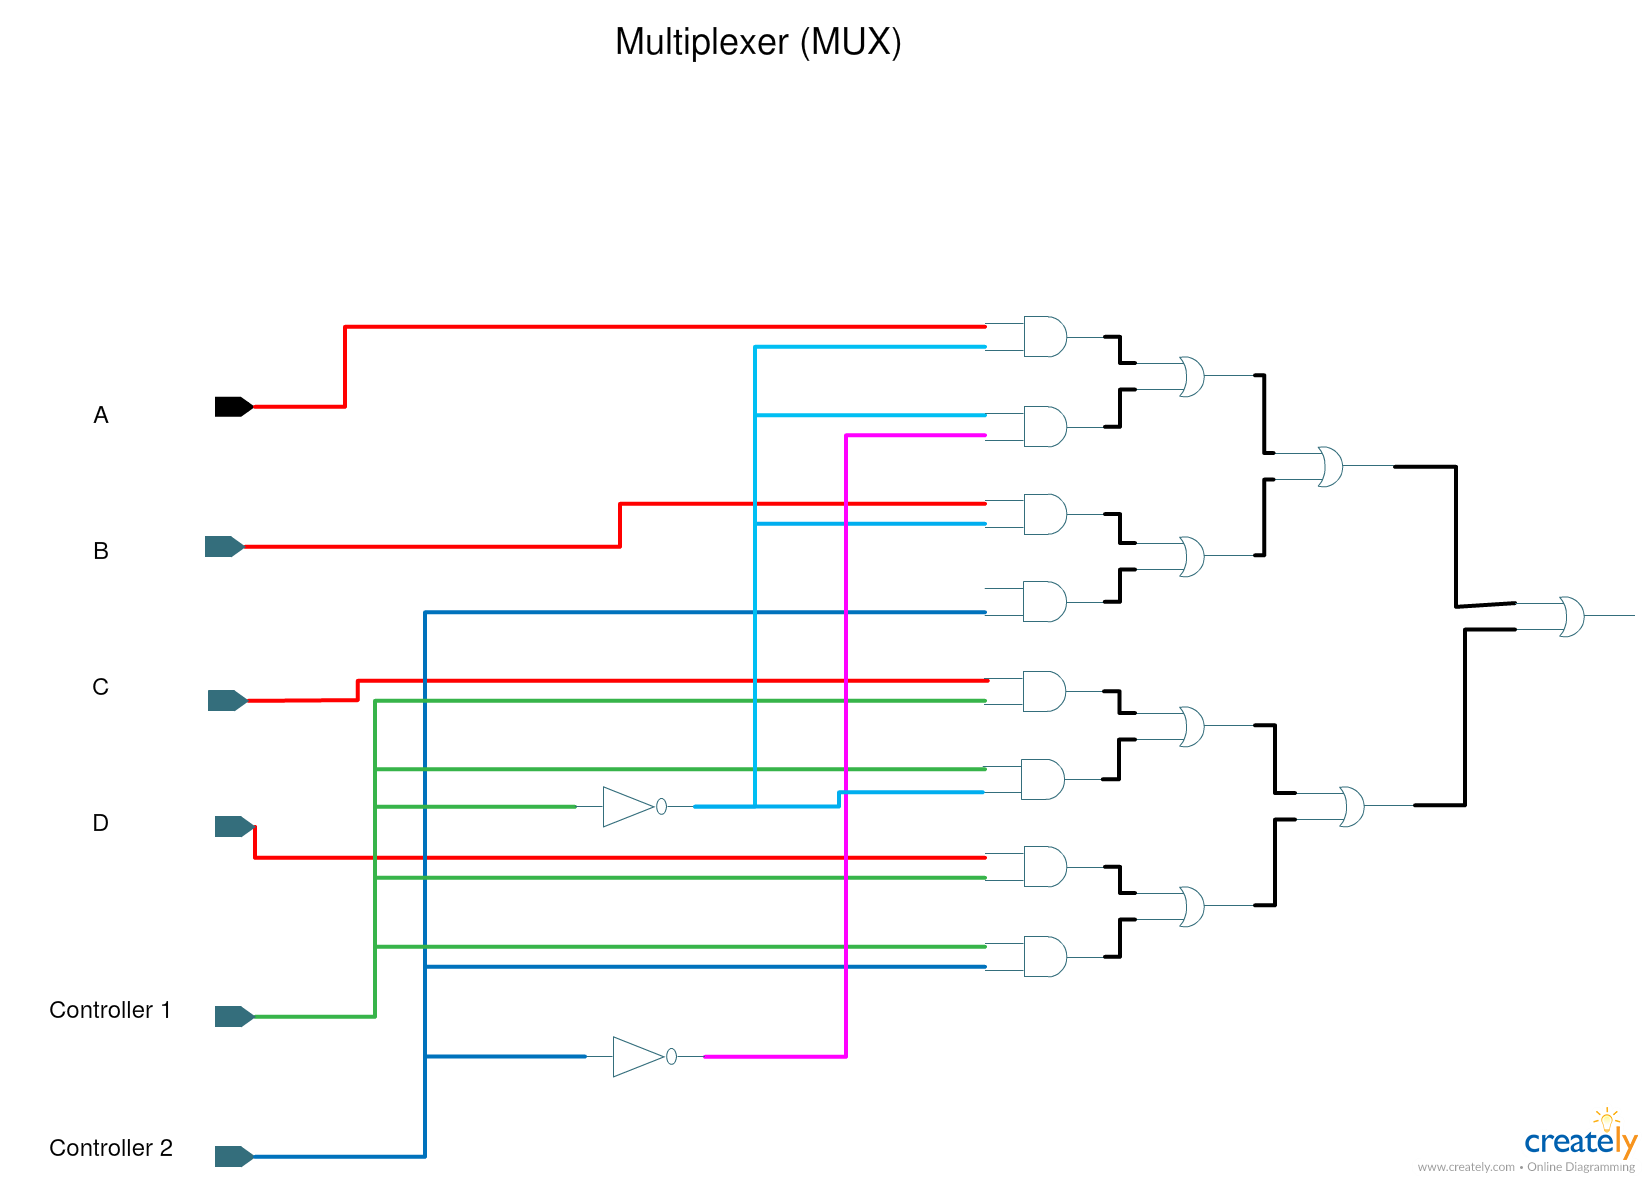 circuit diagram gates wiring diagram list circuit diagram of full subtractor using basic gates circuit diagram [ 1650 x 1180 Pixel ]